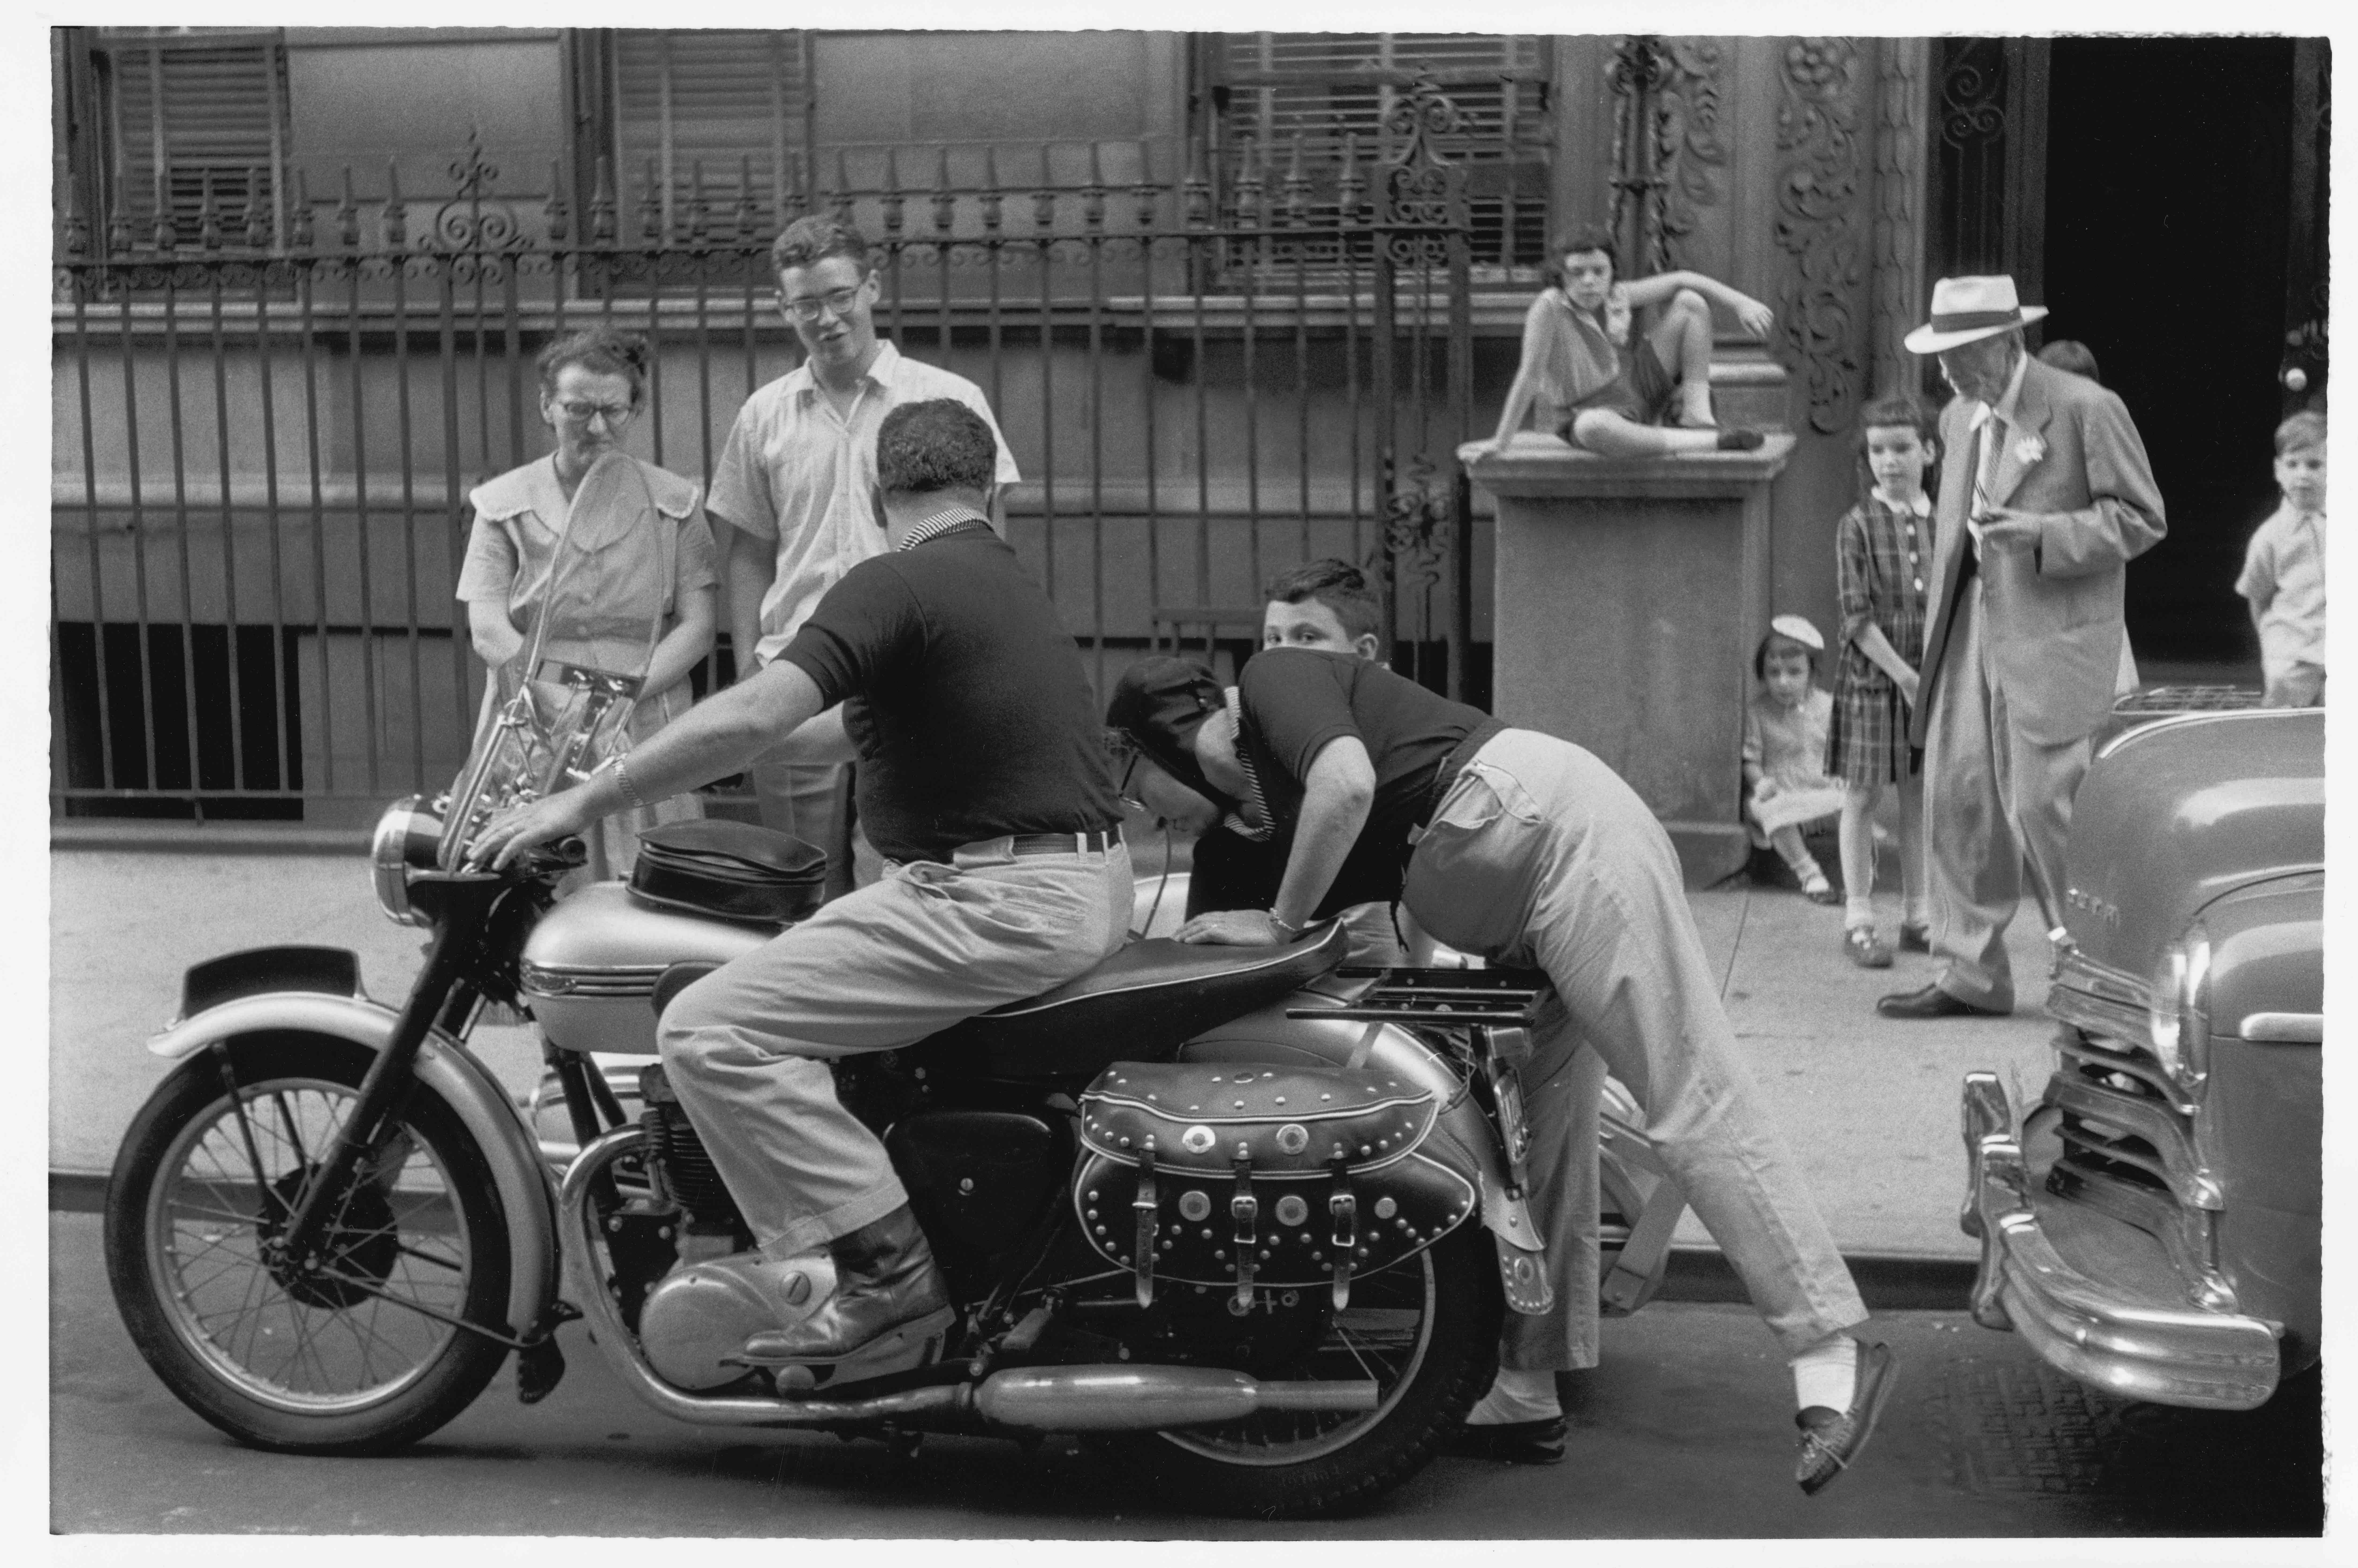 Vermont family on a motorcycle, 1957